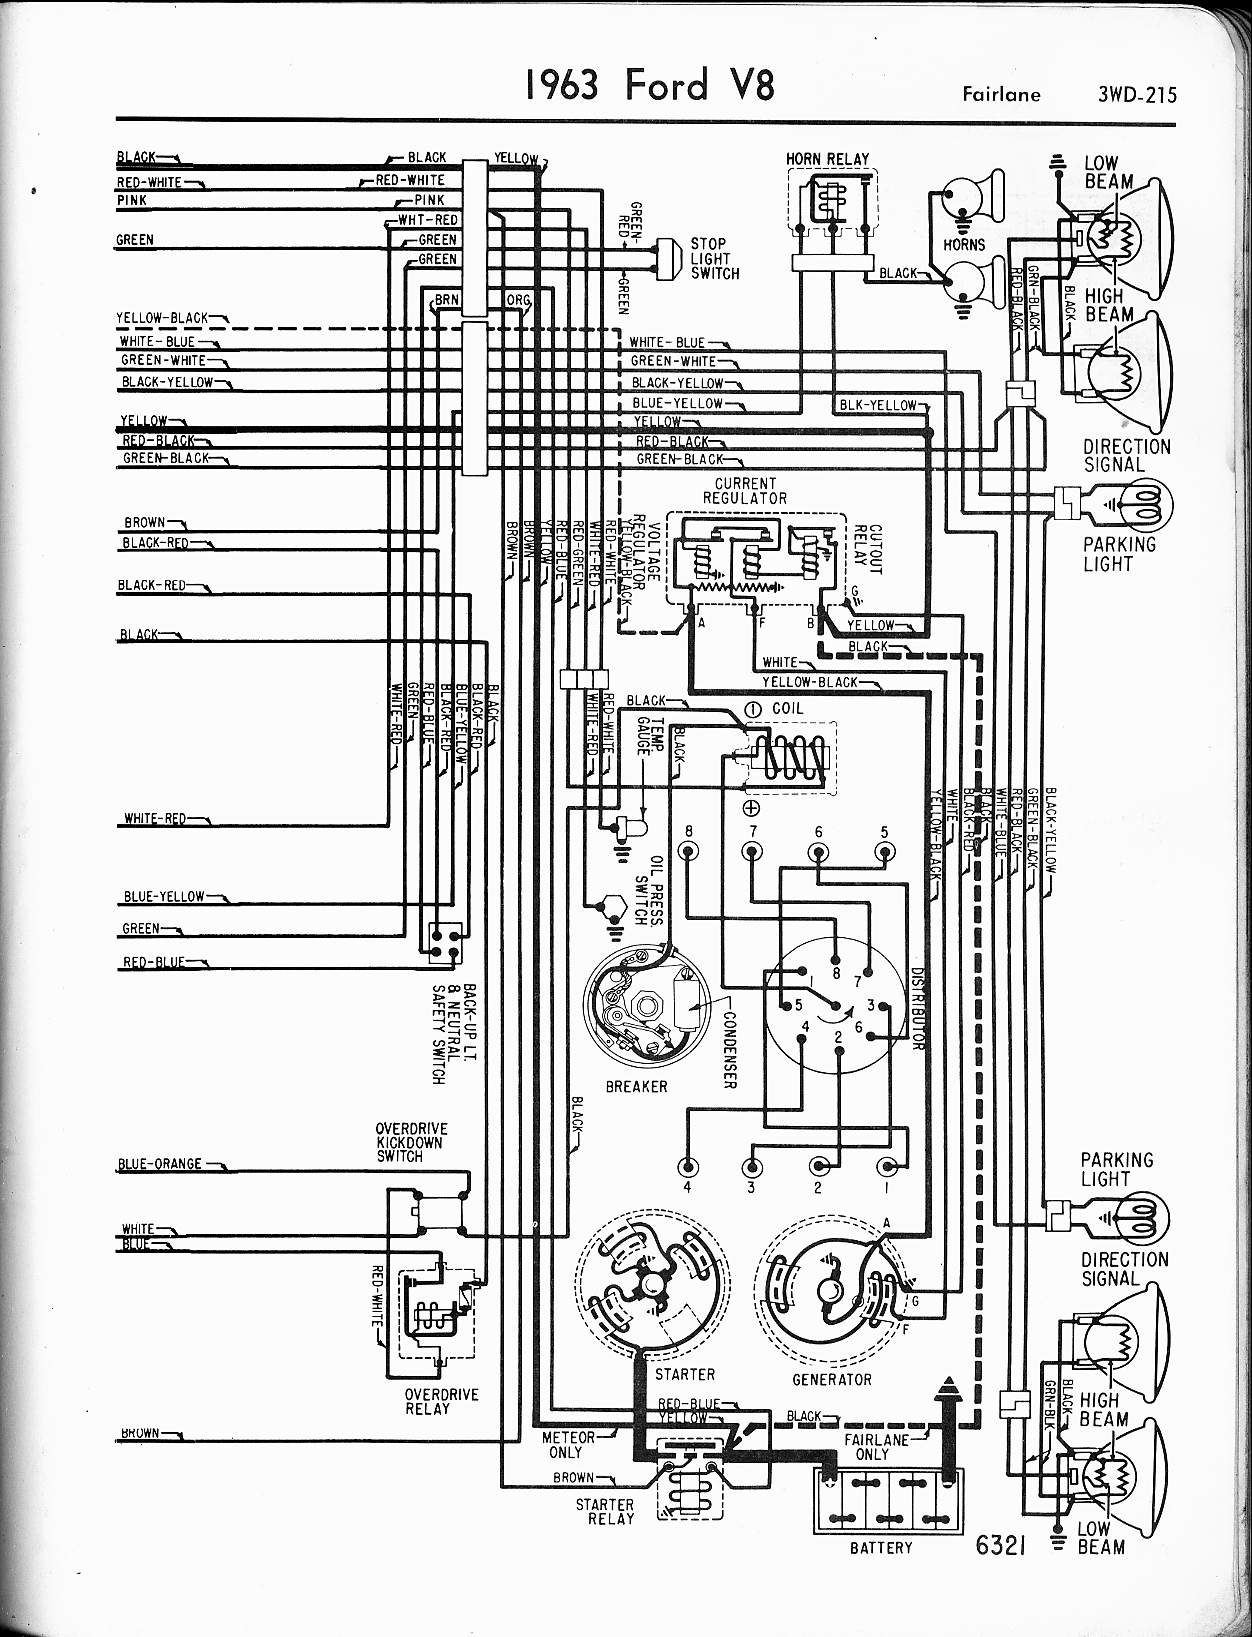 Remarkable 57 65 Ford Wiring Diagrams Wiring Cloud Staixuggs Outletorg